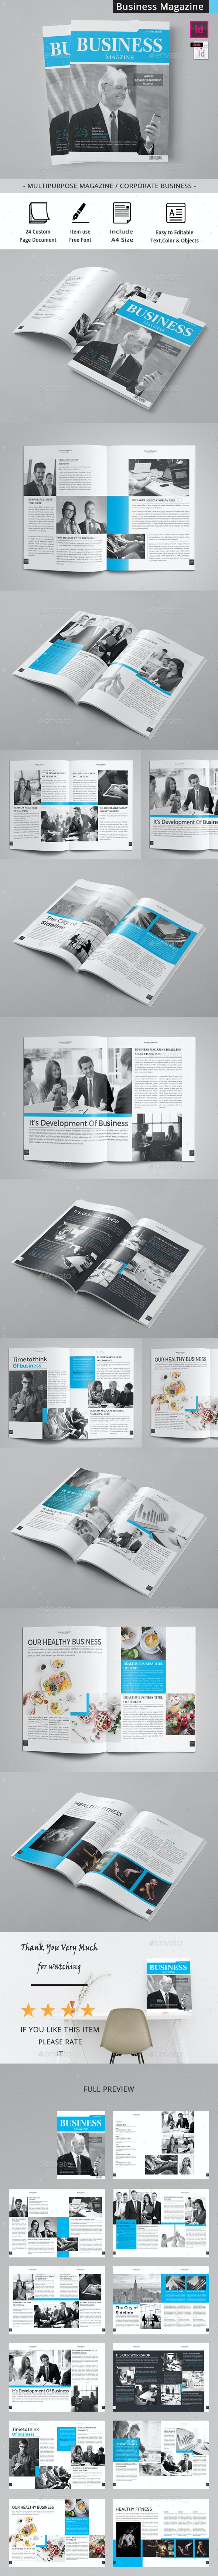 The Business Magazine - Magazines Print Templates